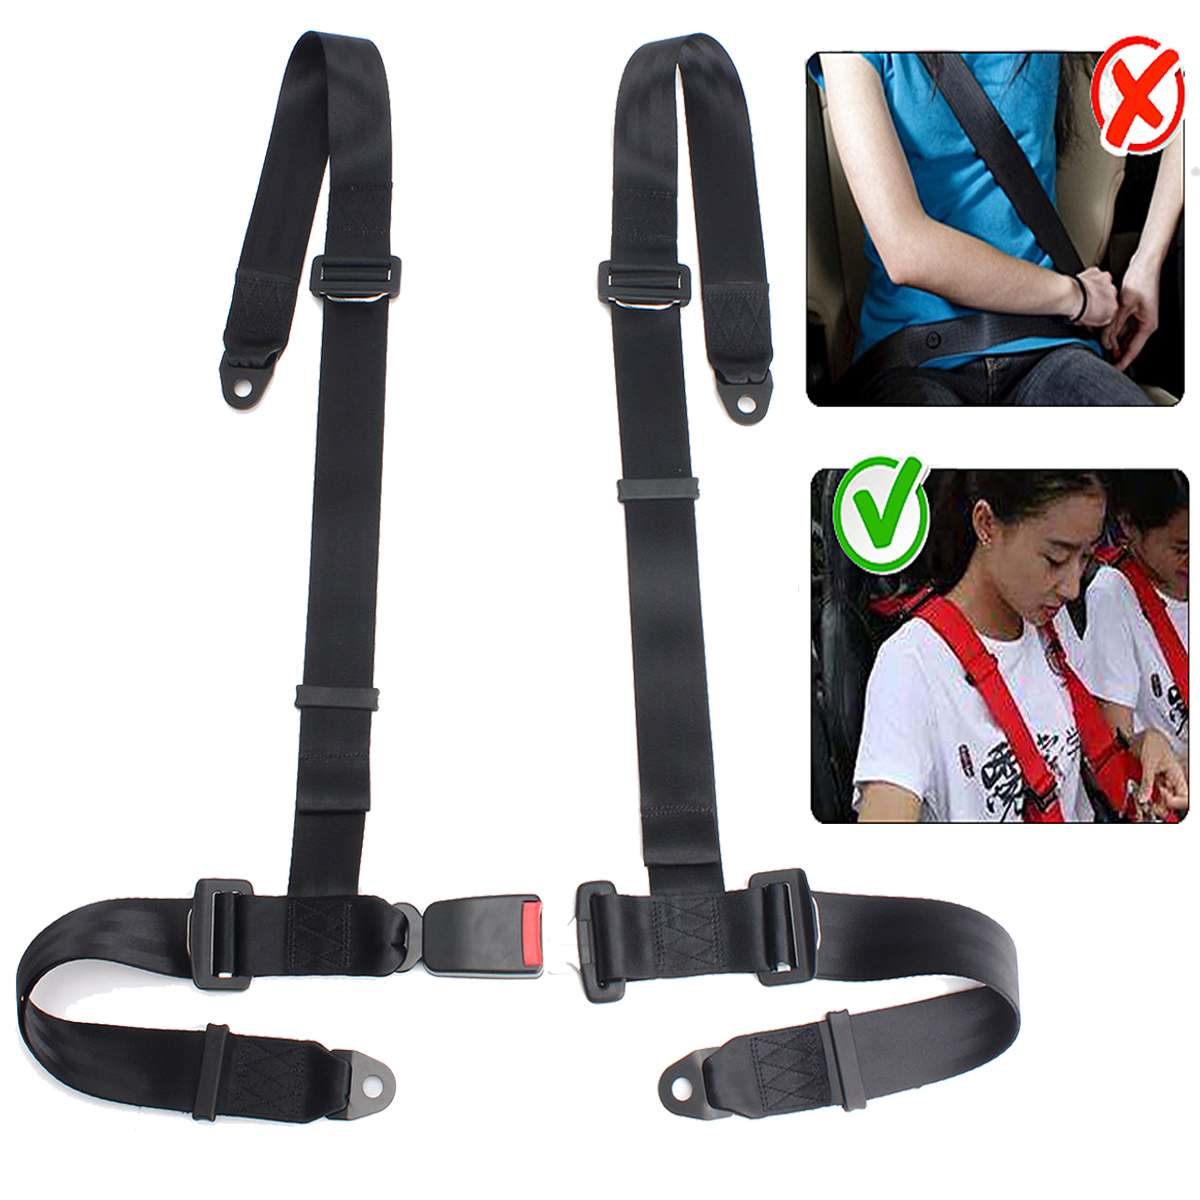 1x Universal Black 4 Point Buckle Auto Car Racing Safety Seat Belt Harness Strap